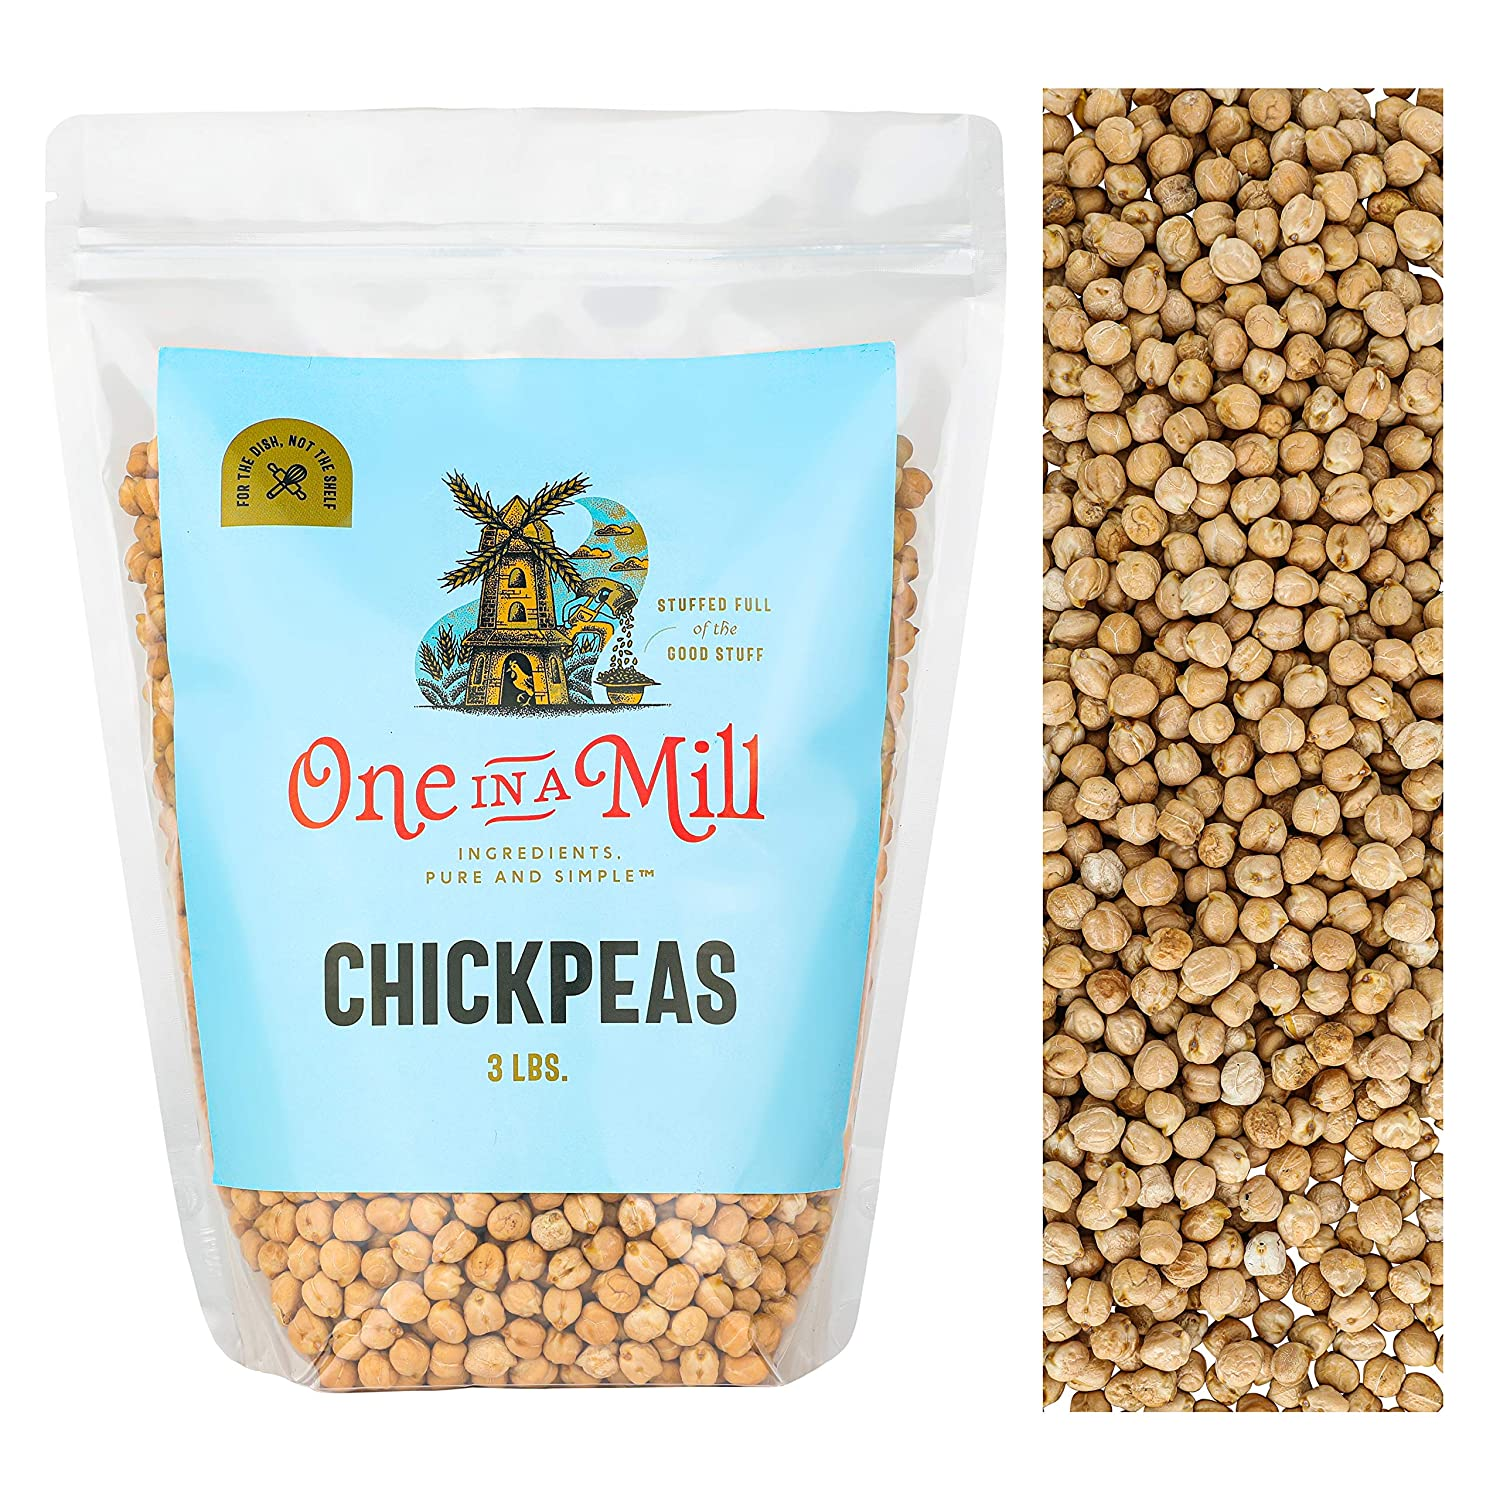 One in a Mill Whole Raw Chickpeas 3lb Bulk Resealable Bag | All-Natural Garbanzo Beans for Hummus, Salads, Stews | Non-GMO, Vegan, Certified Kosher Parve, Whole30 Friendly